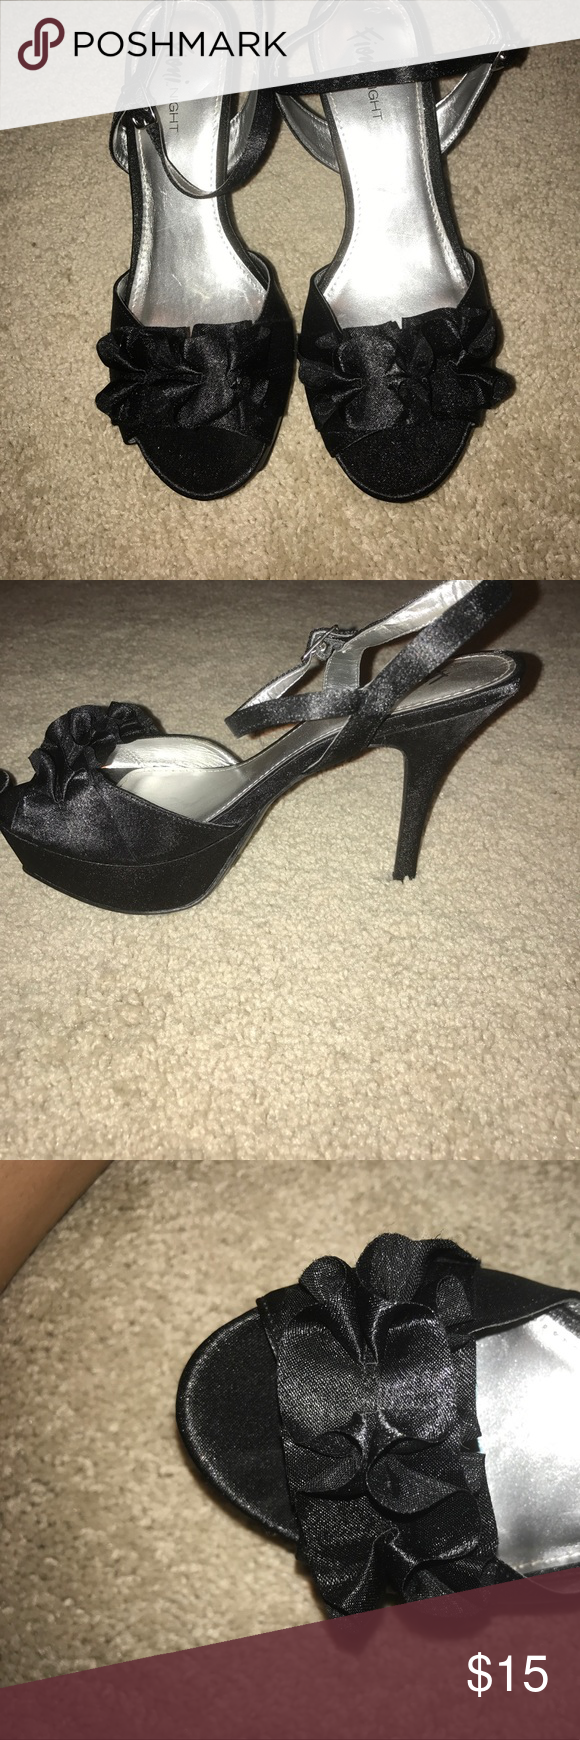 Black heel with ruffle black satin strappy heels with ruffle detail